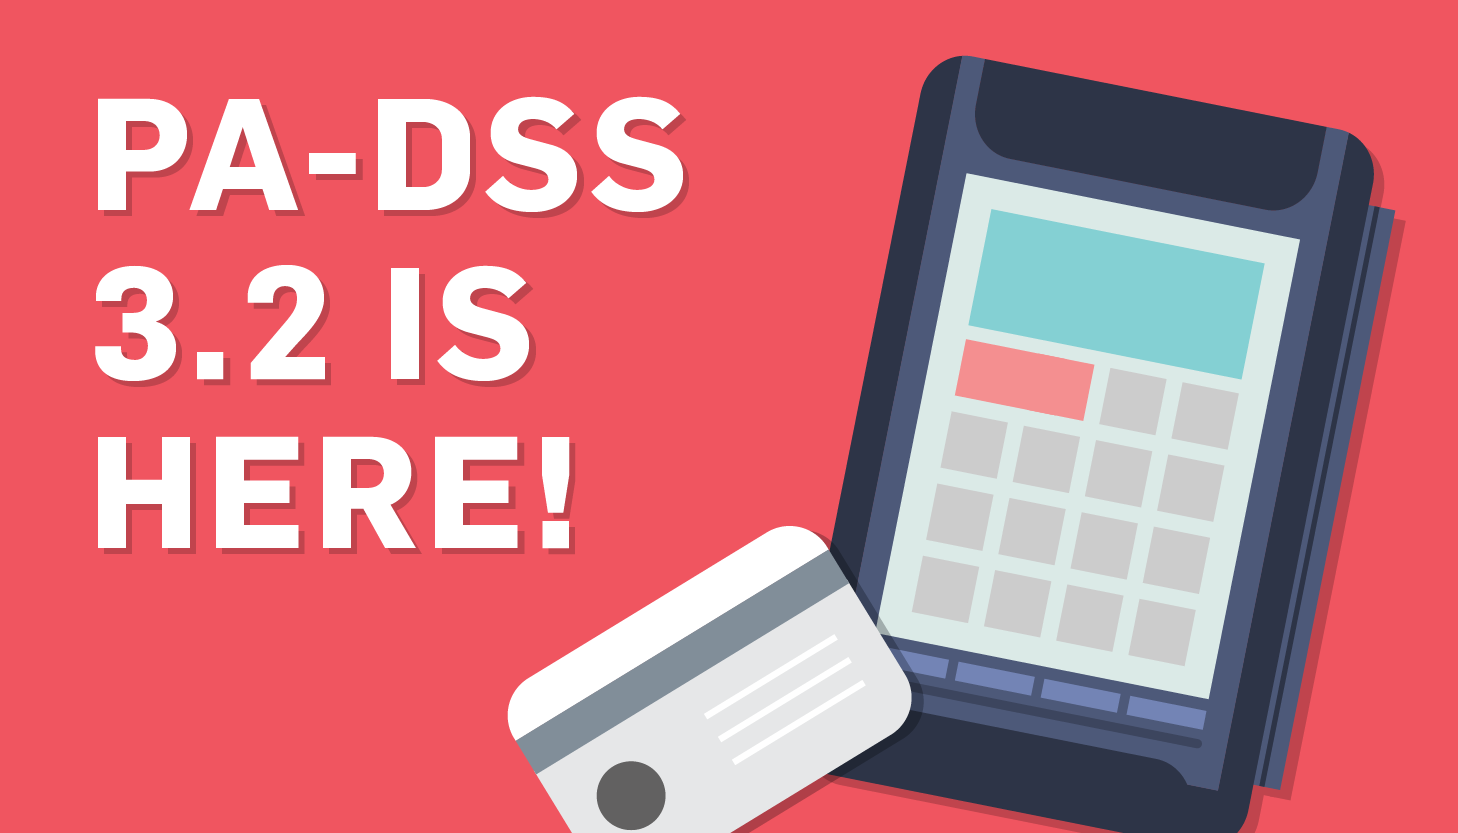 PA-DSS 3.2: the What, the Why, and the When